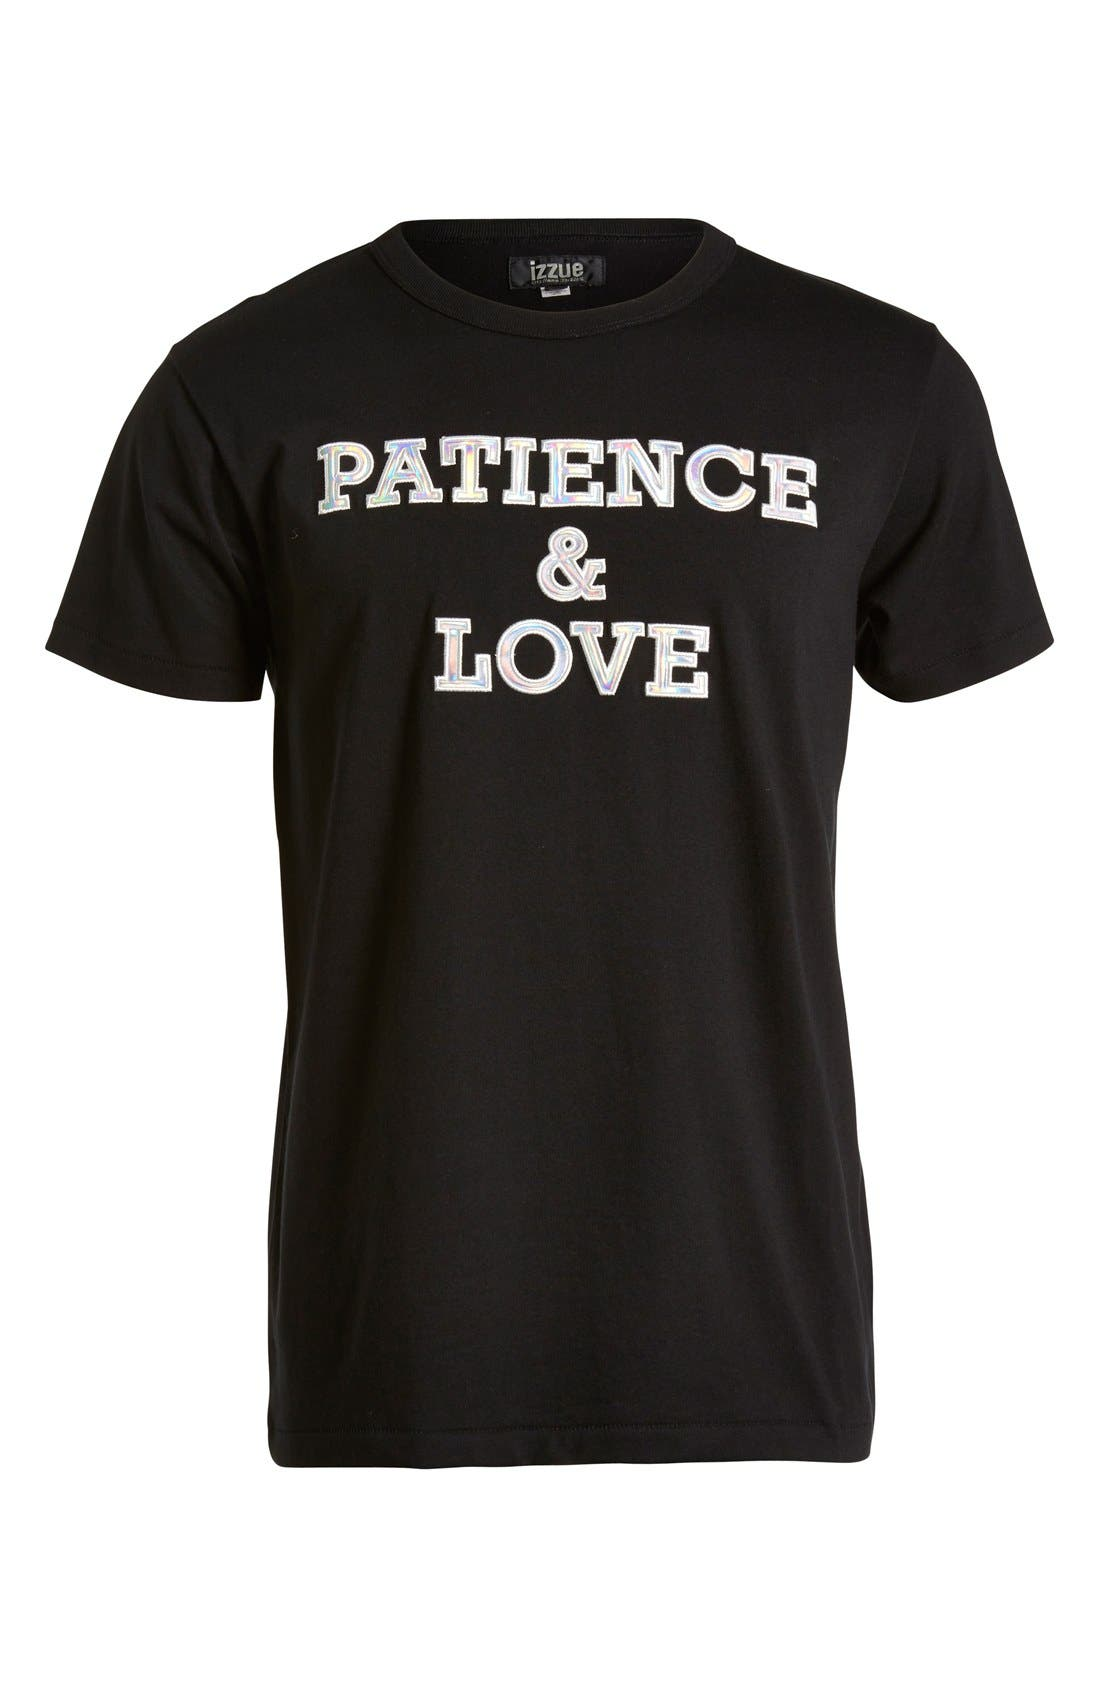 'Patience & Love' Iridescent Graphic T-Shirt, Main, color, 001